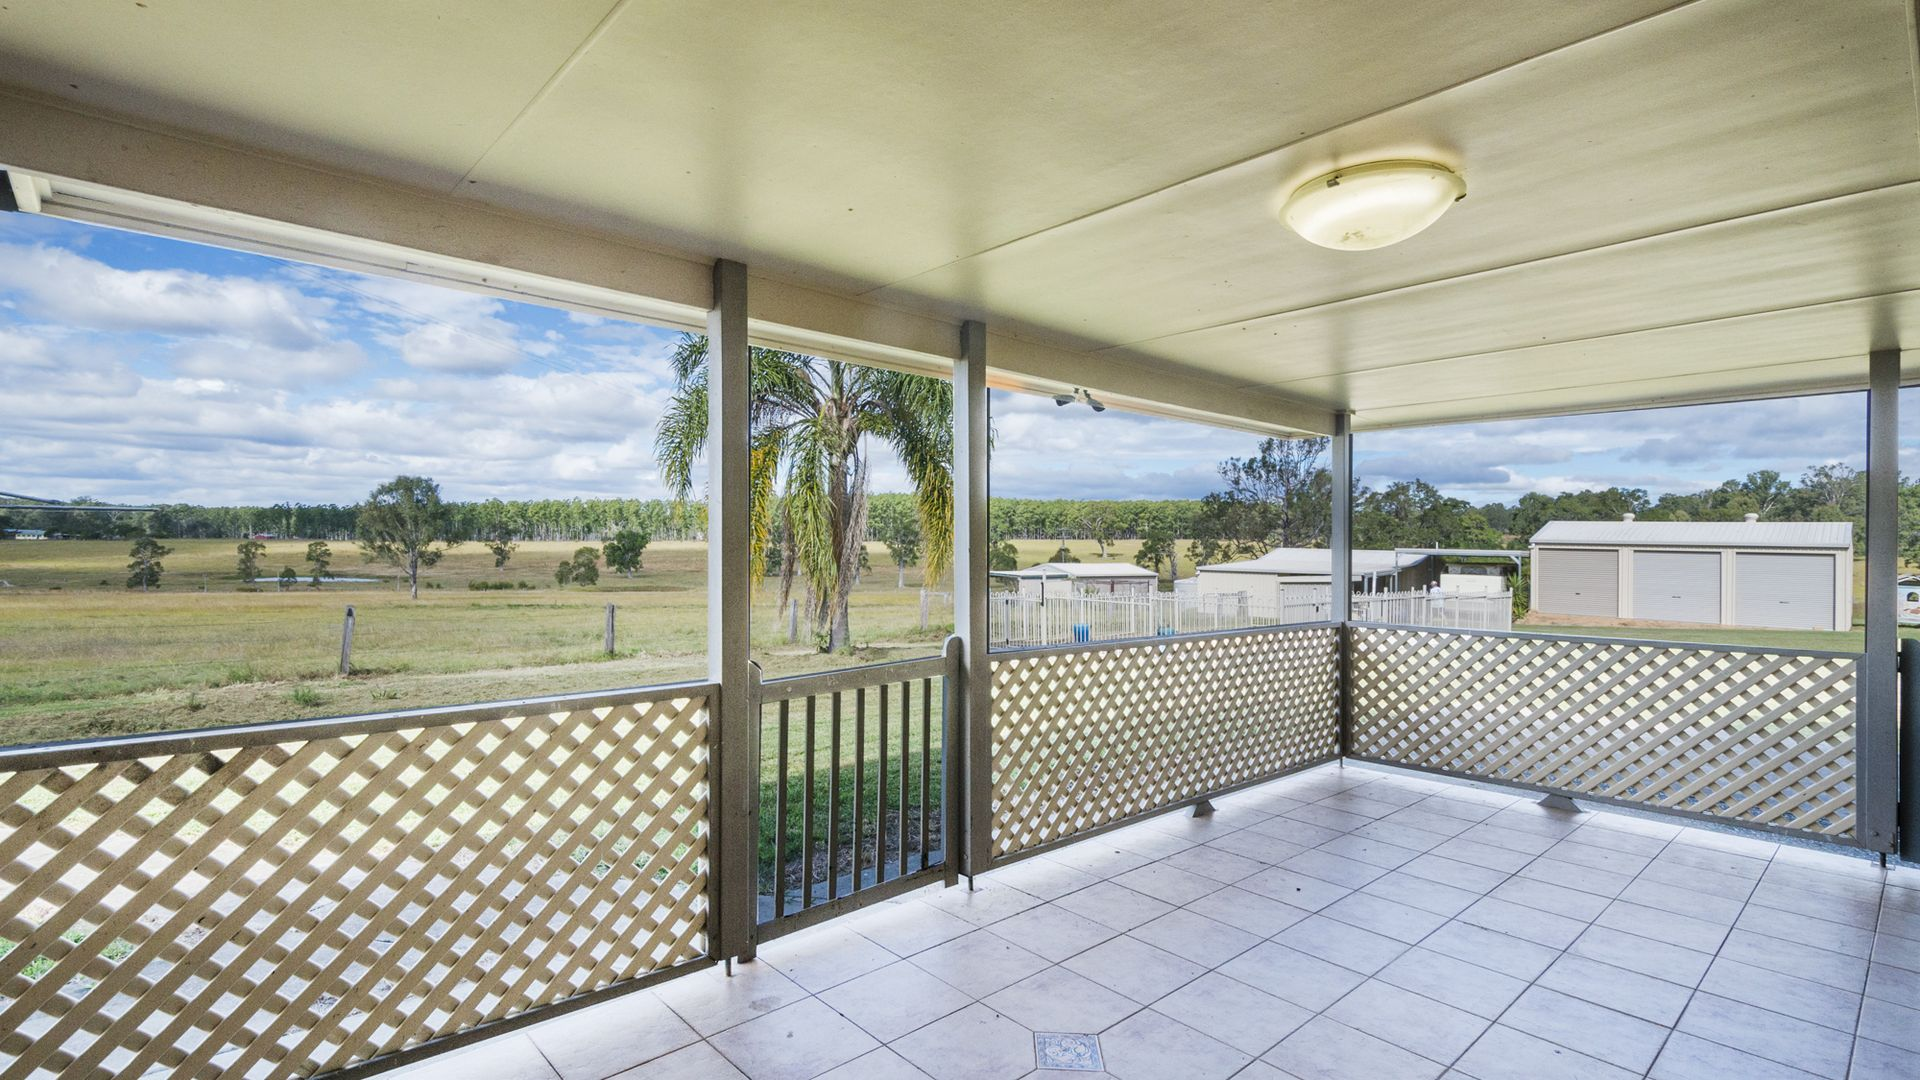 499 LOWER KANGAROO CREEK ROAD, Coutts Crossing NSW 2460, Image 1